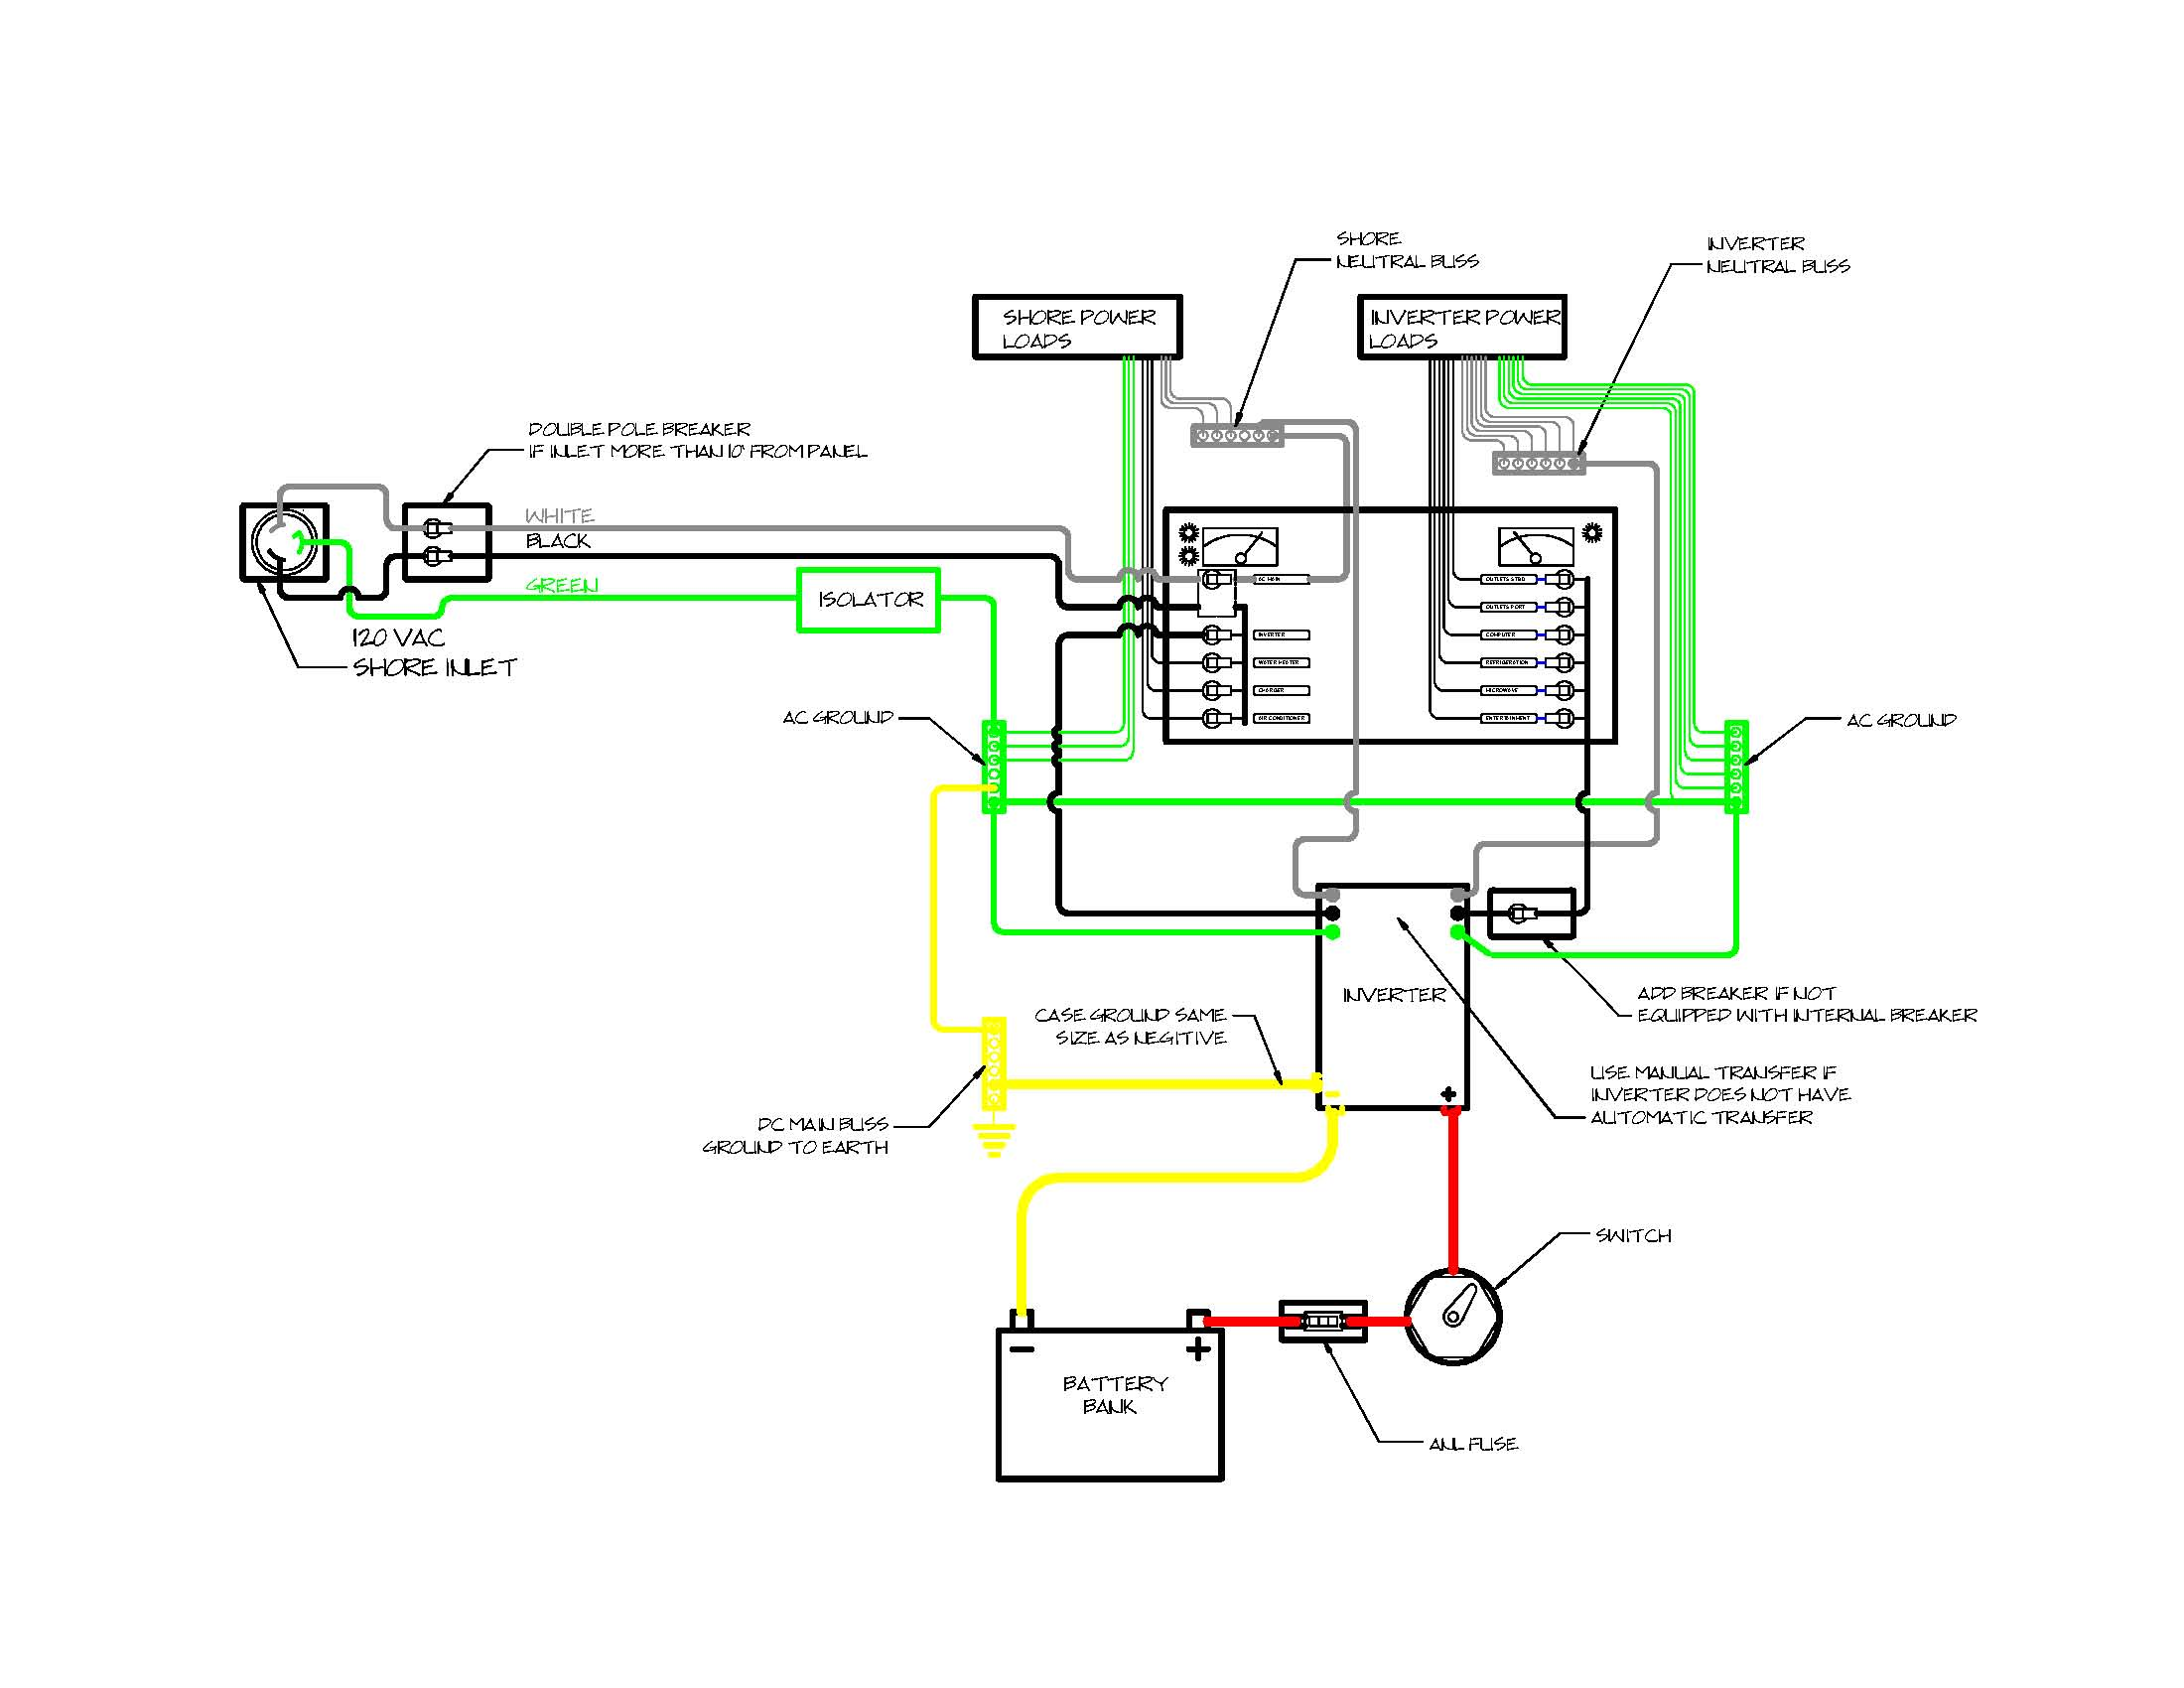 wiring diagram for all power generator on wiring images free Portable Generator Wiring Diagram wiring diagram for all power generator on wiring diagram for all power generator 2 emergency generator diagram generator wiring to your home portable generator wiring diagram